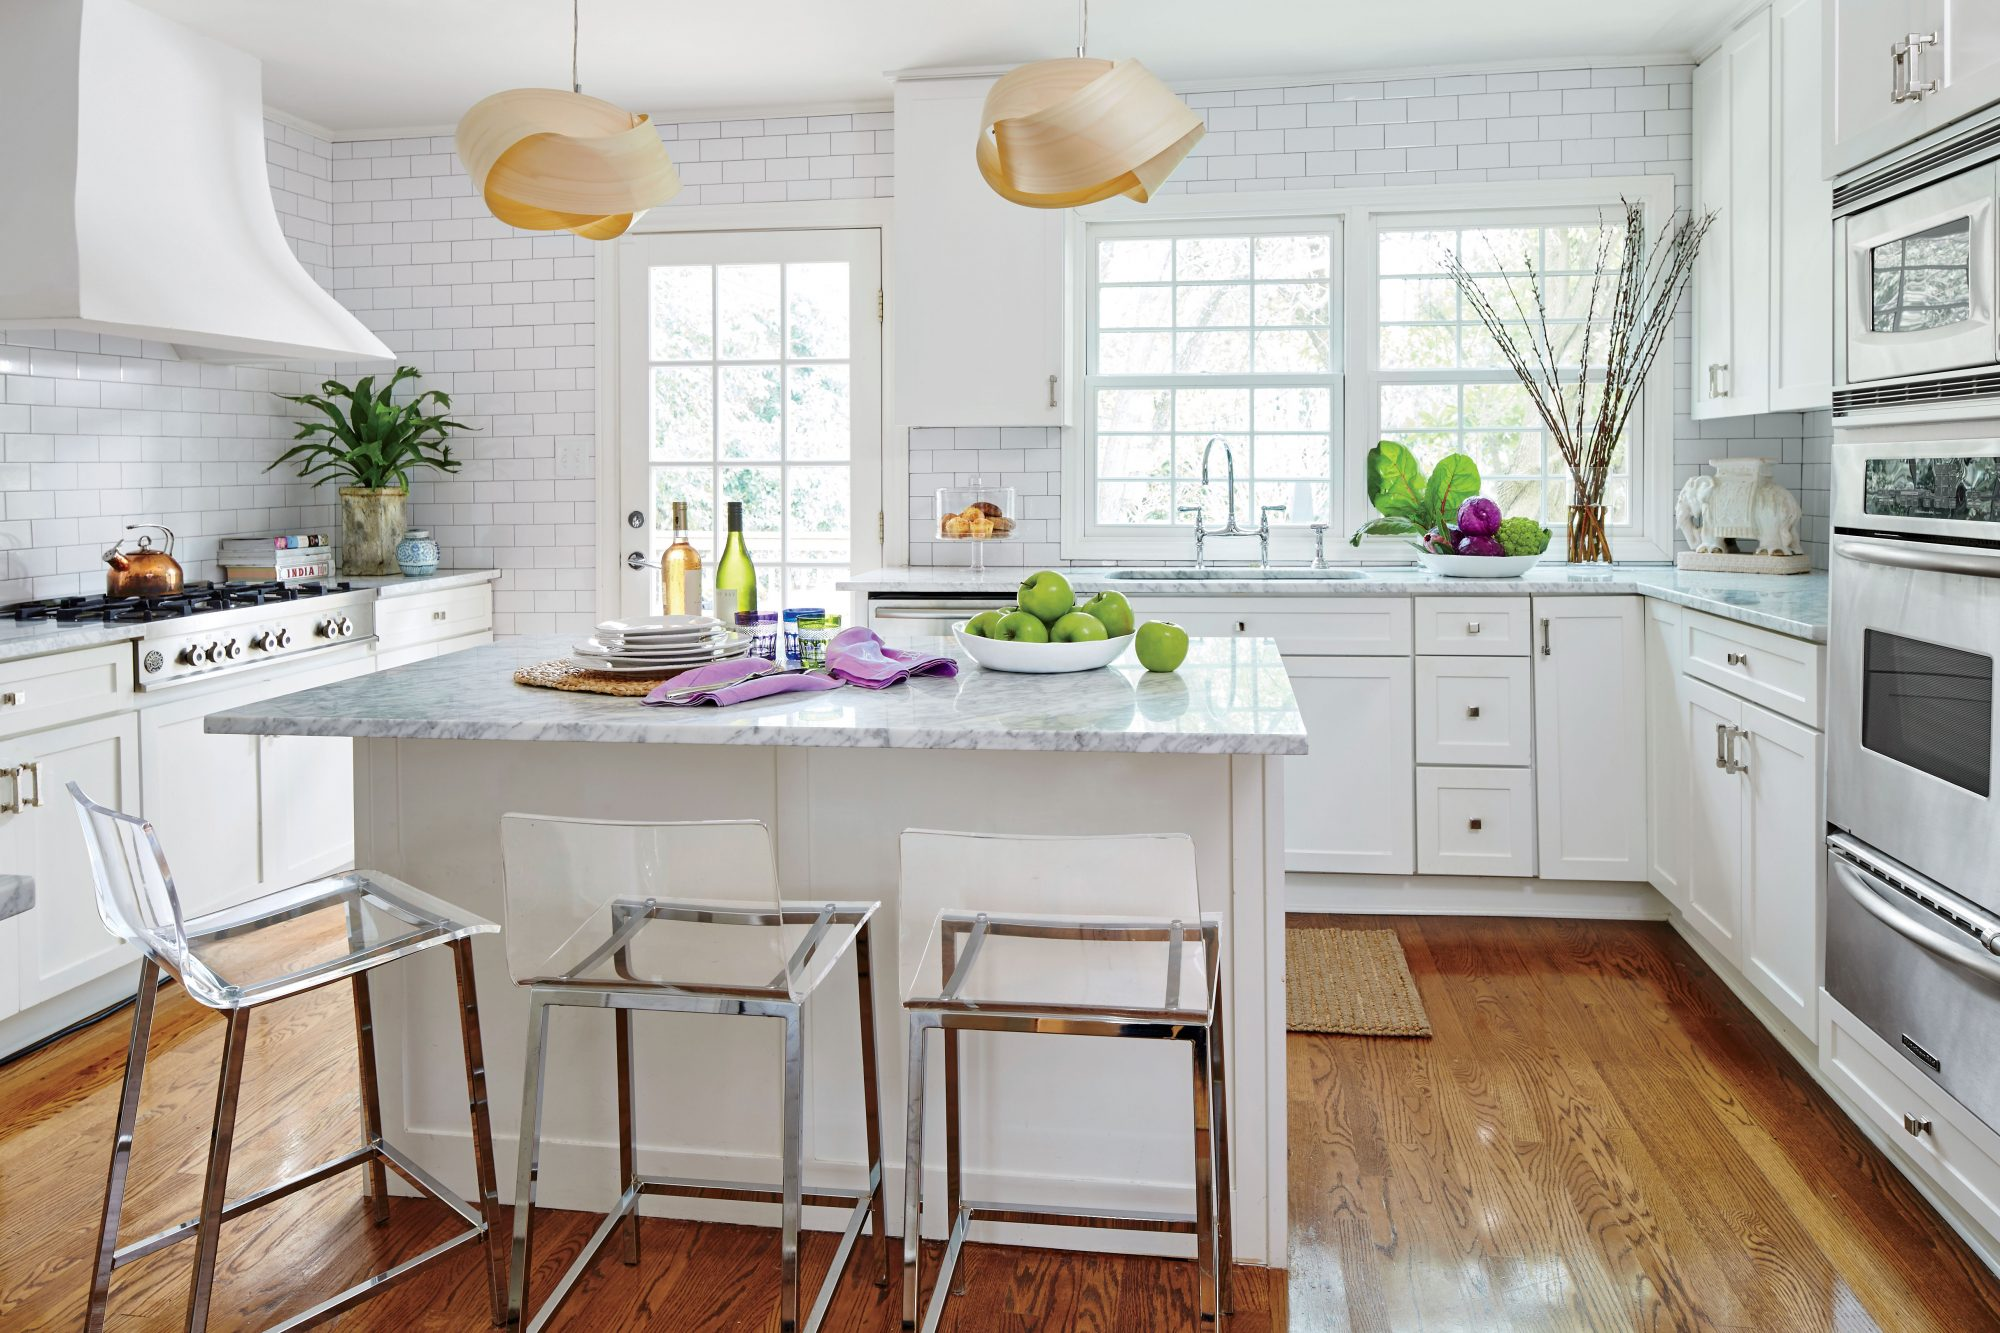 Nicola McLaughlin San Antonio, TX Home White Kitchen